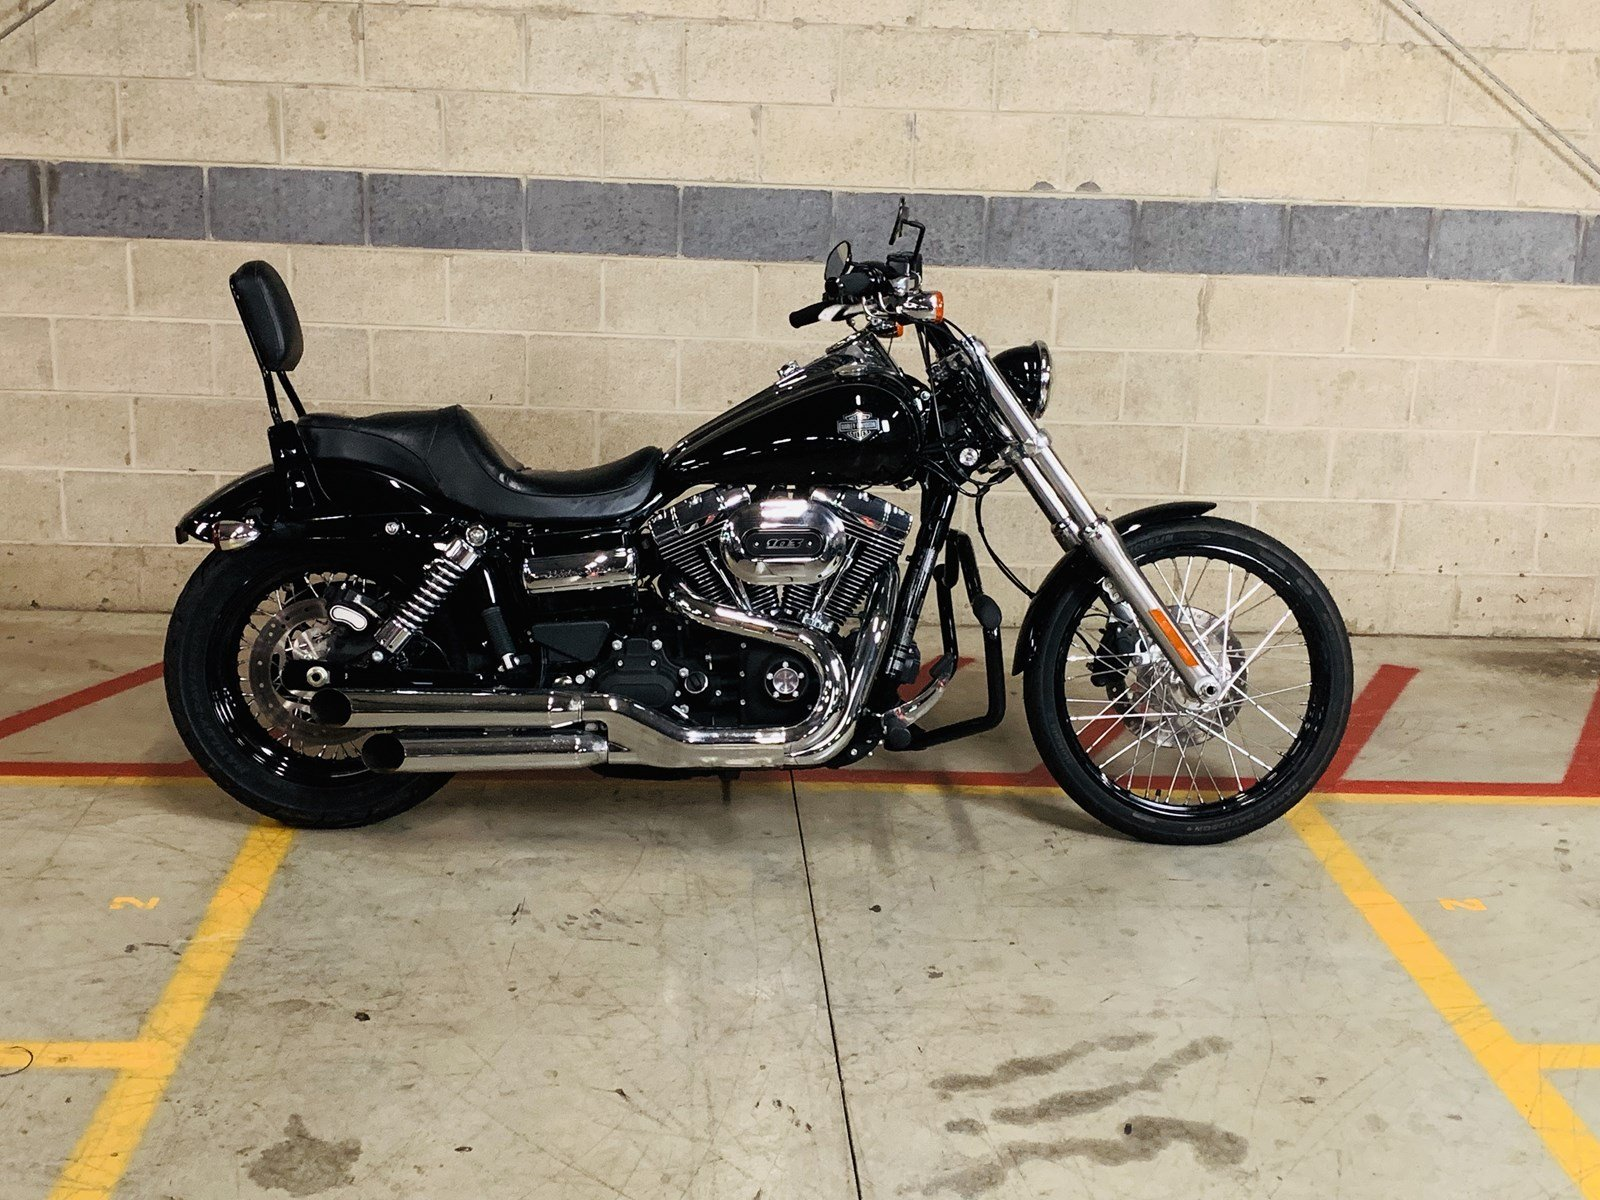 Pre-Owned 2016 Harley-Davidson Dyna Wide Glide FXDWG Dyna